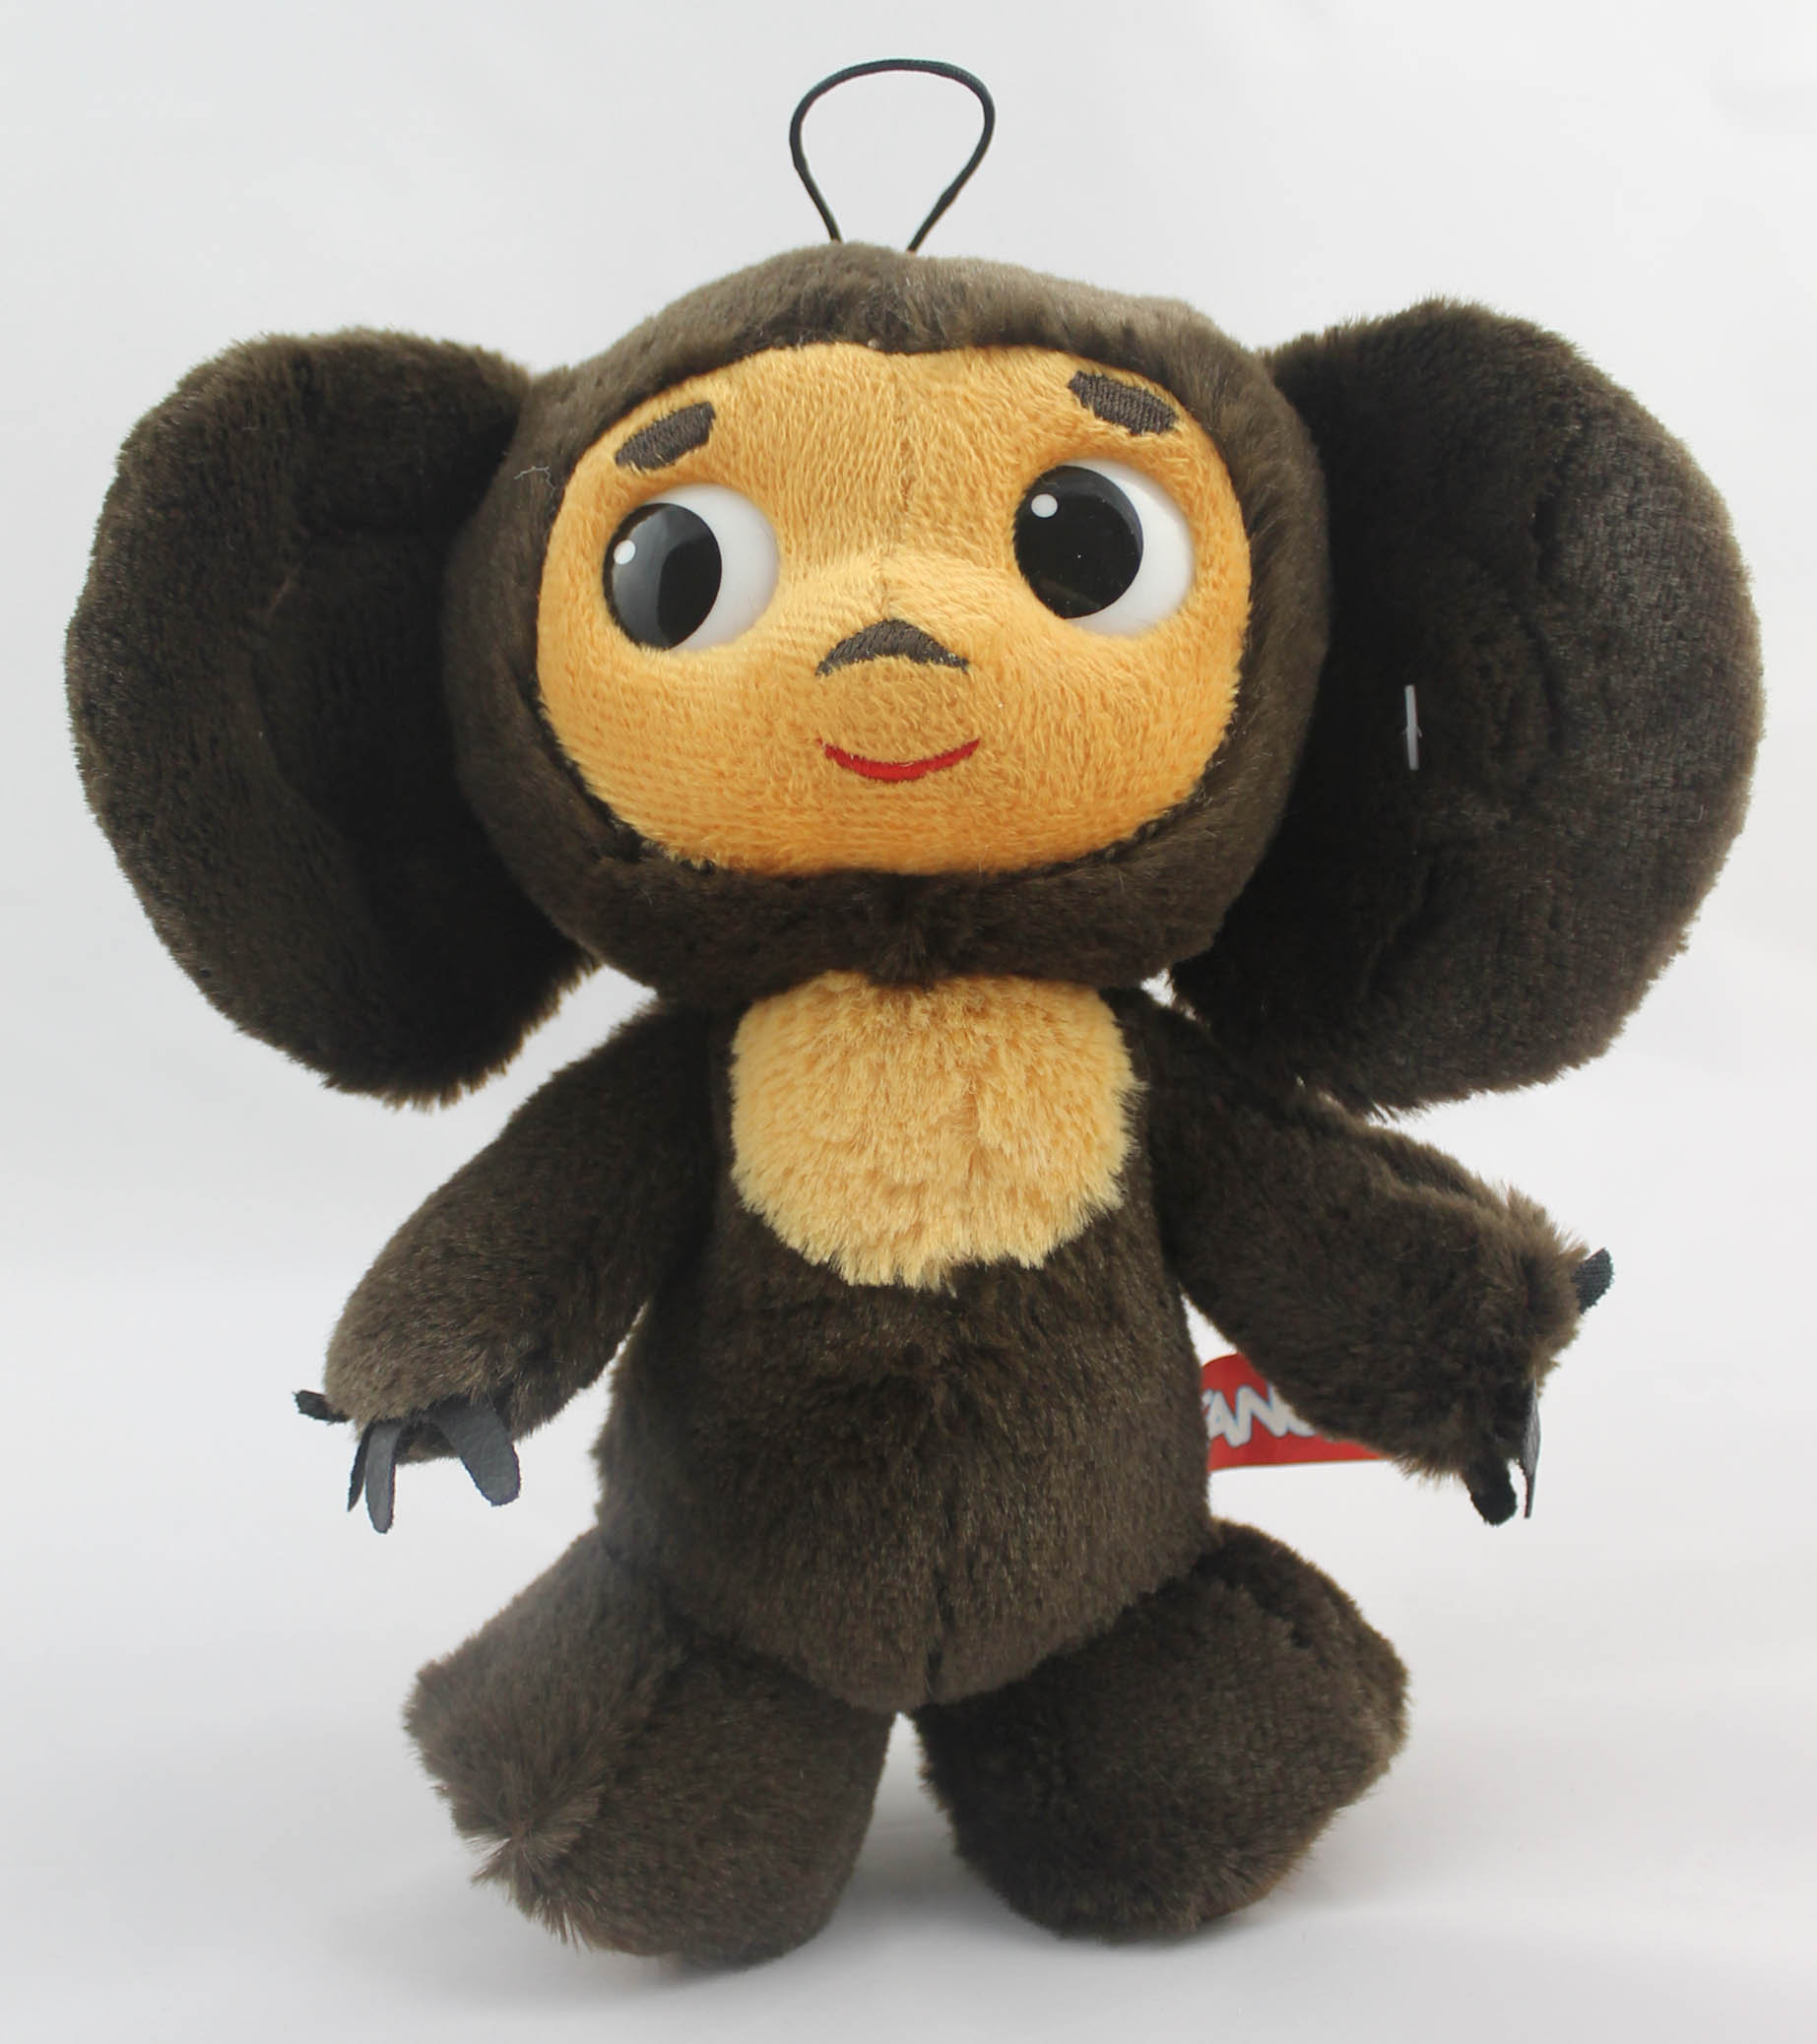 Cheburashka Plush Soft Toy Plushier Stuffed Animals for ...